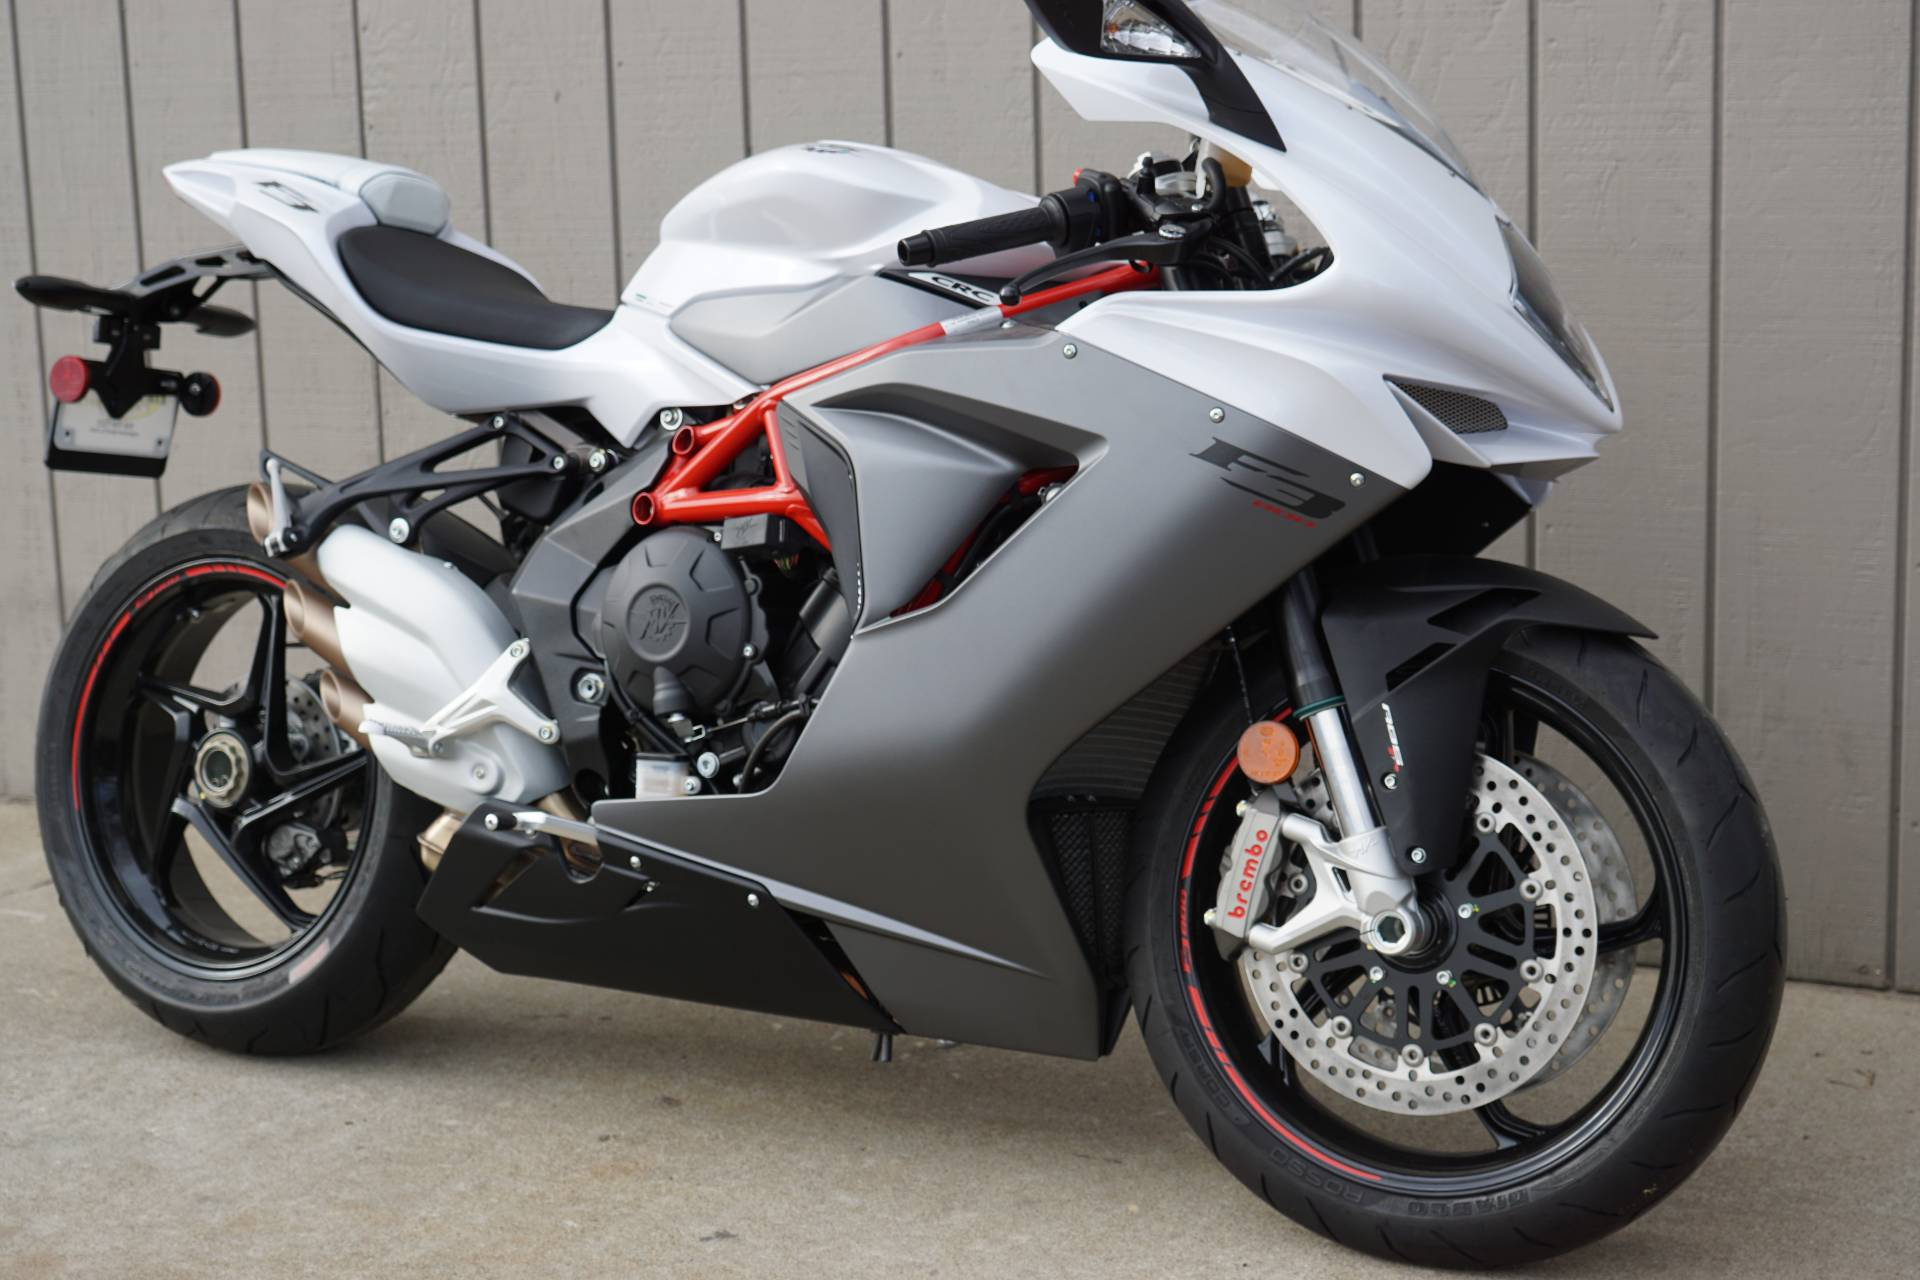 2018 MV Agusta F3 800 USA in Elk Grove, California - Photo 3